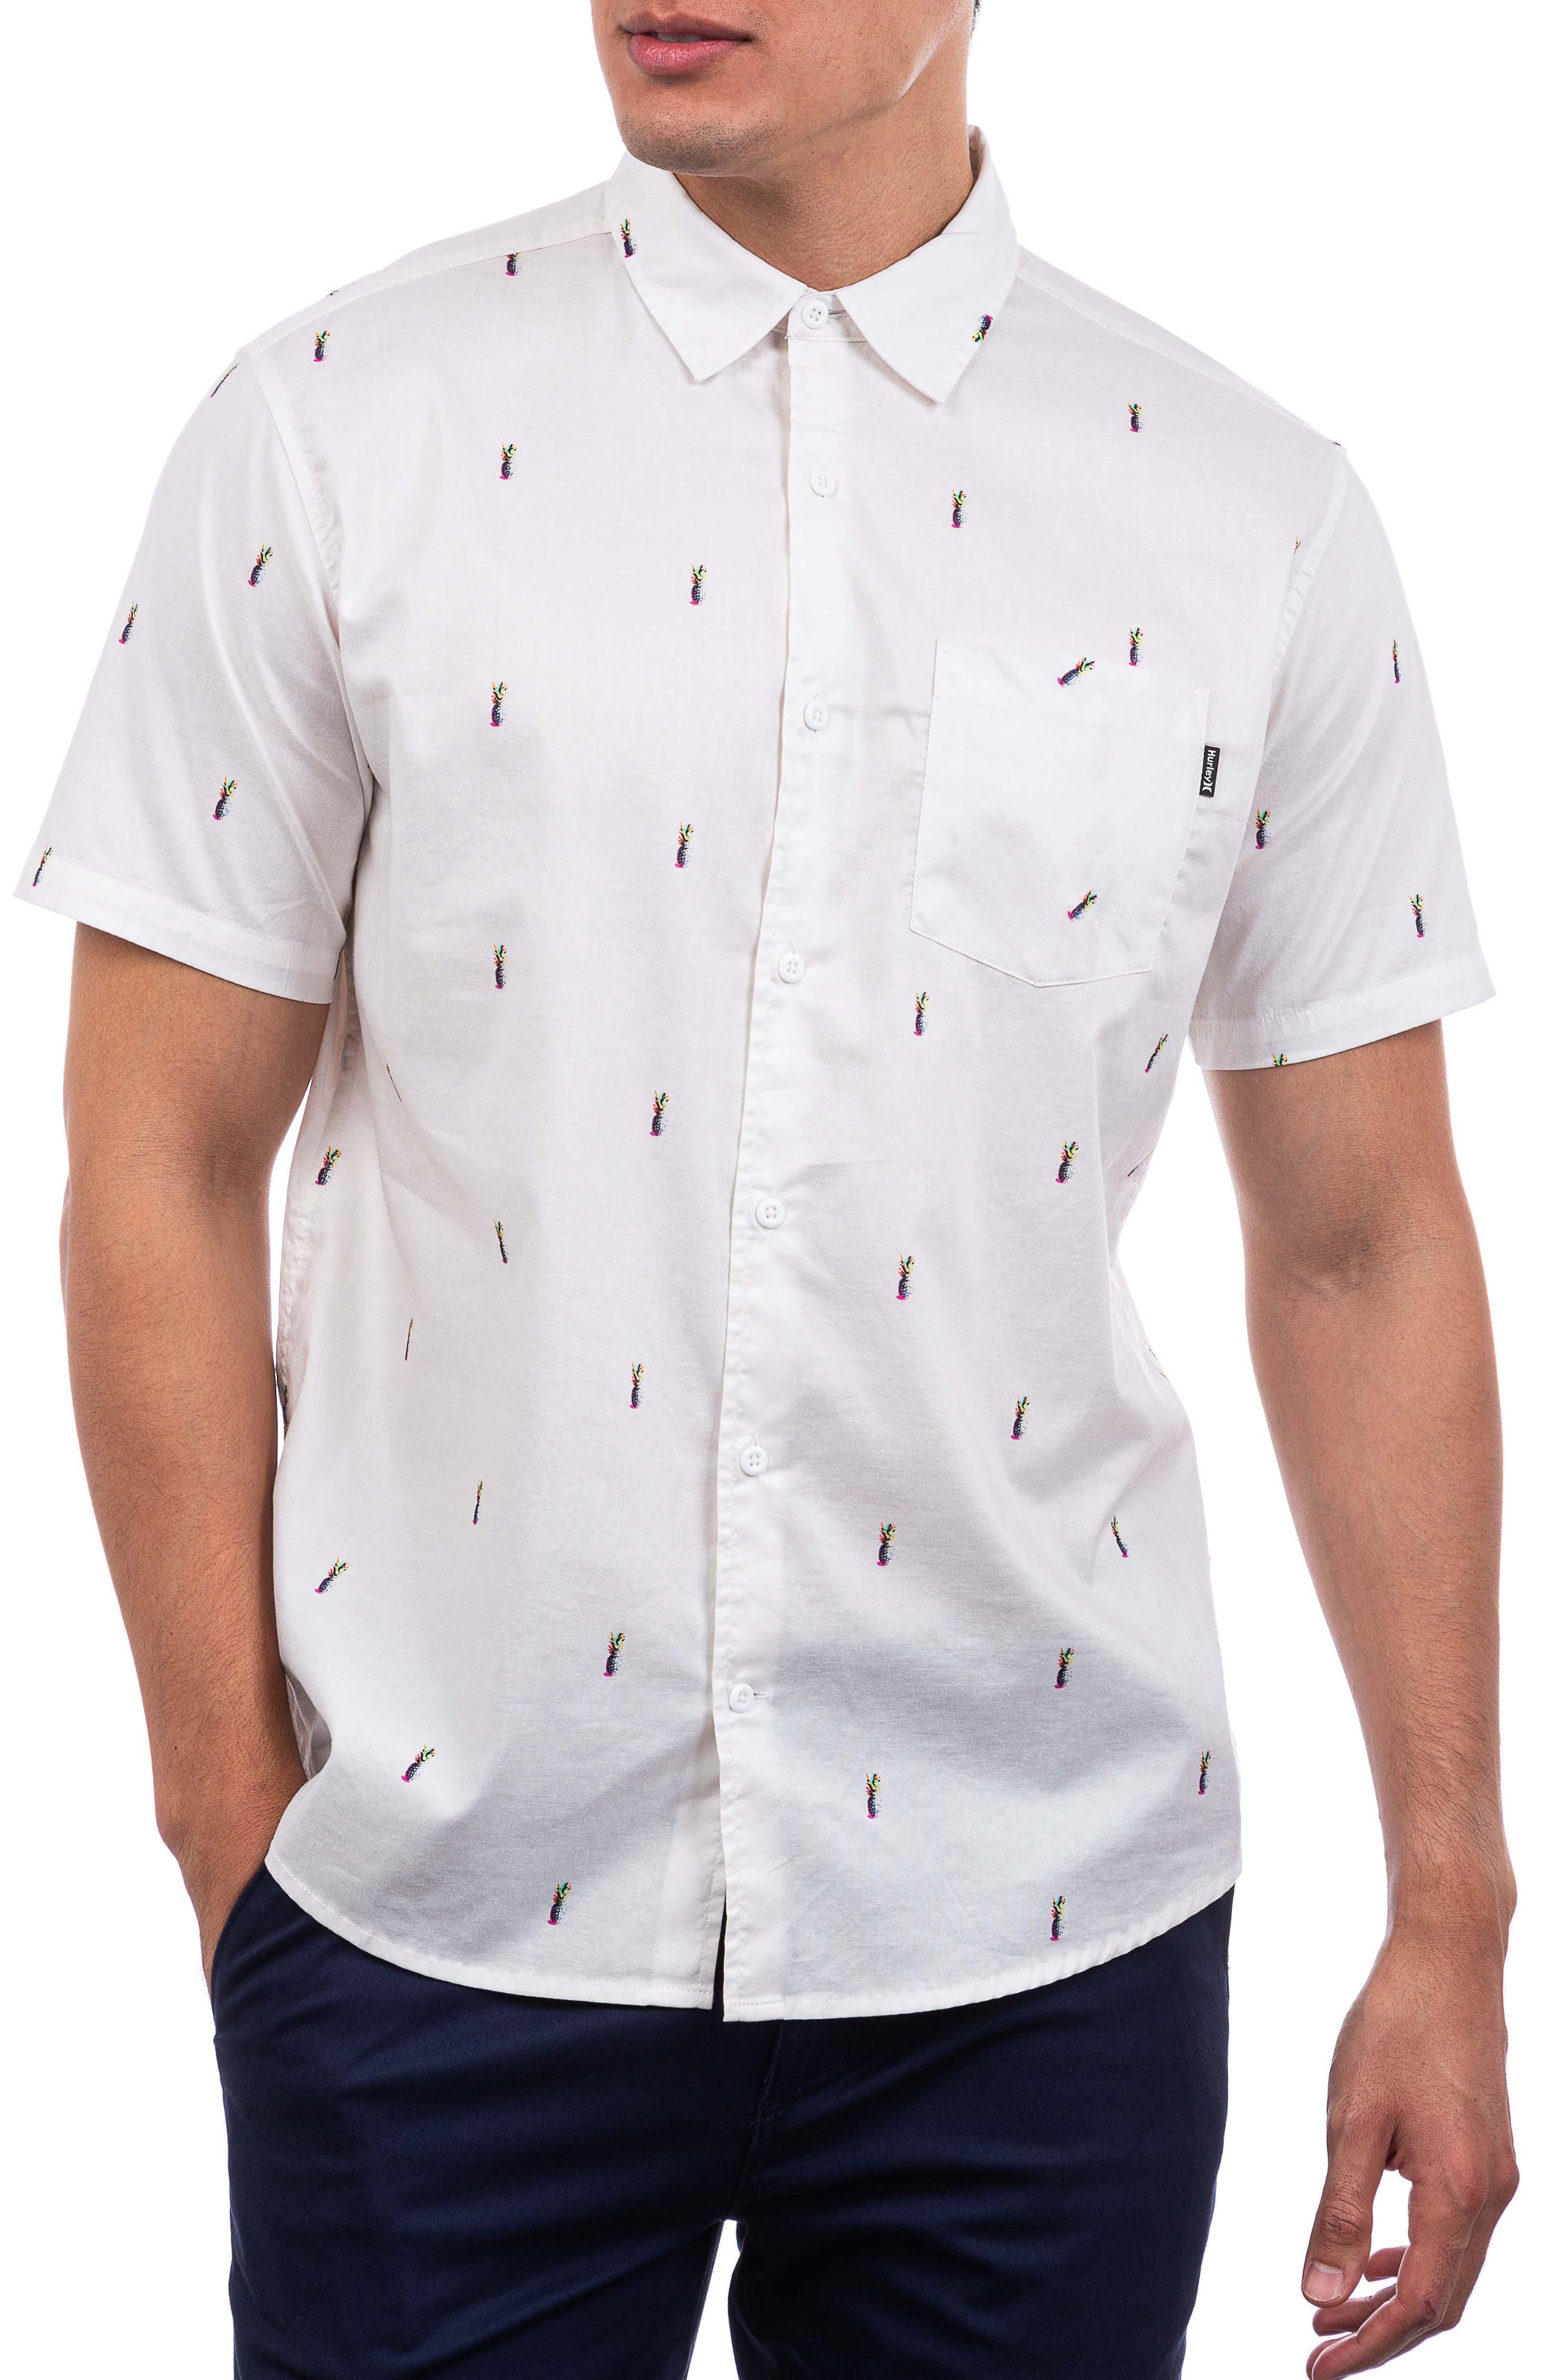 Classic Fit Pineapple Print Stretch Short Sleeve Button-Up Shirt